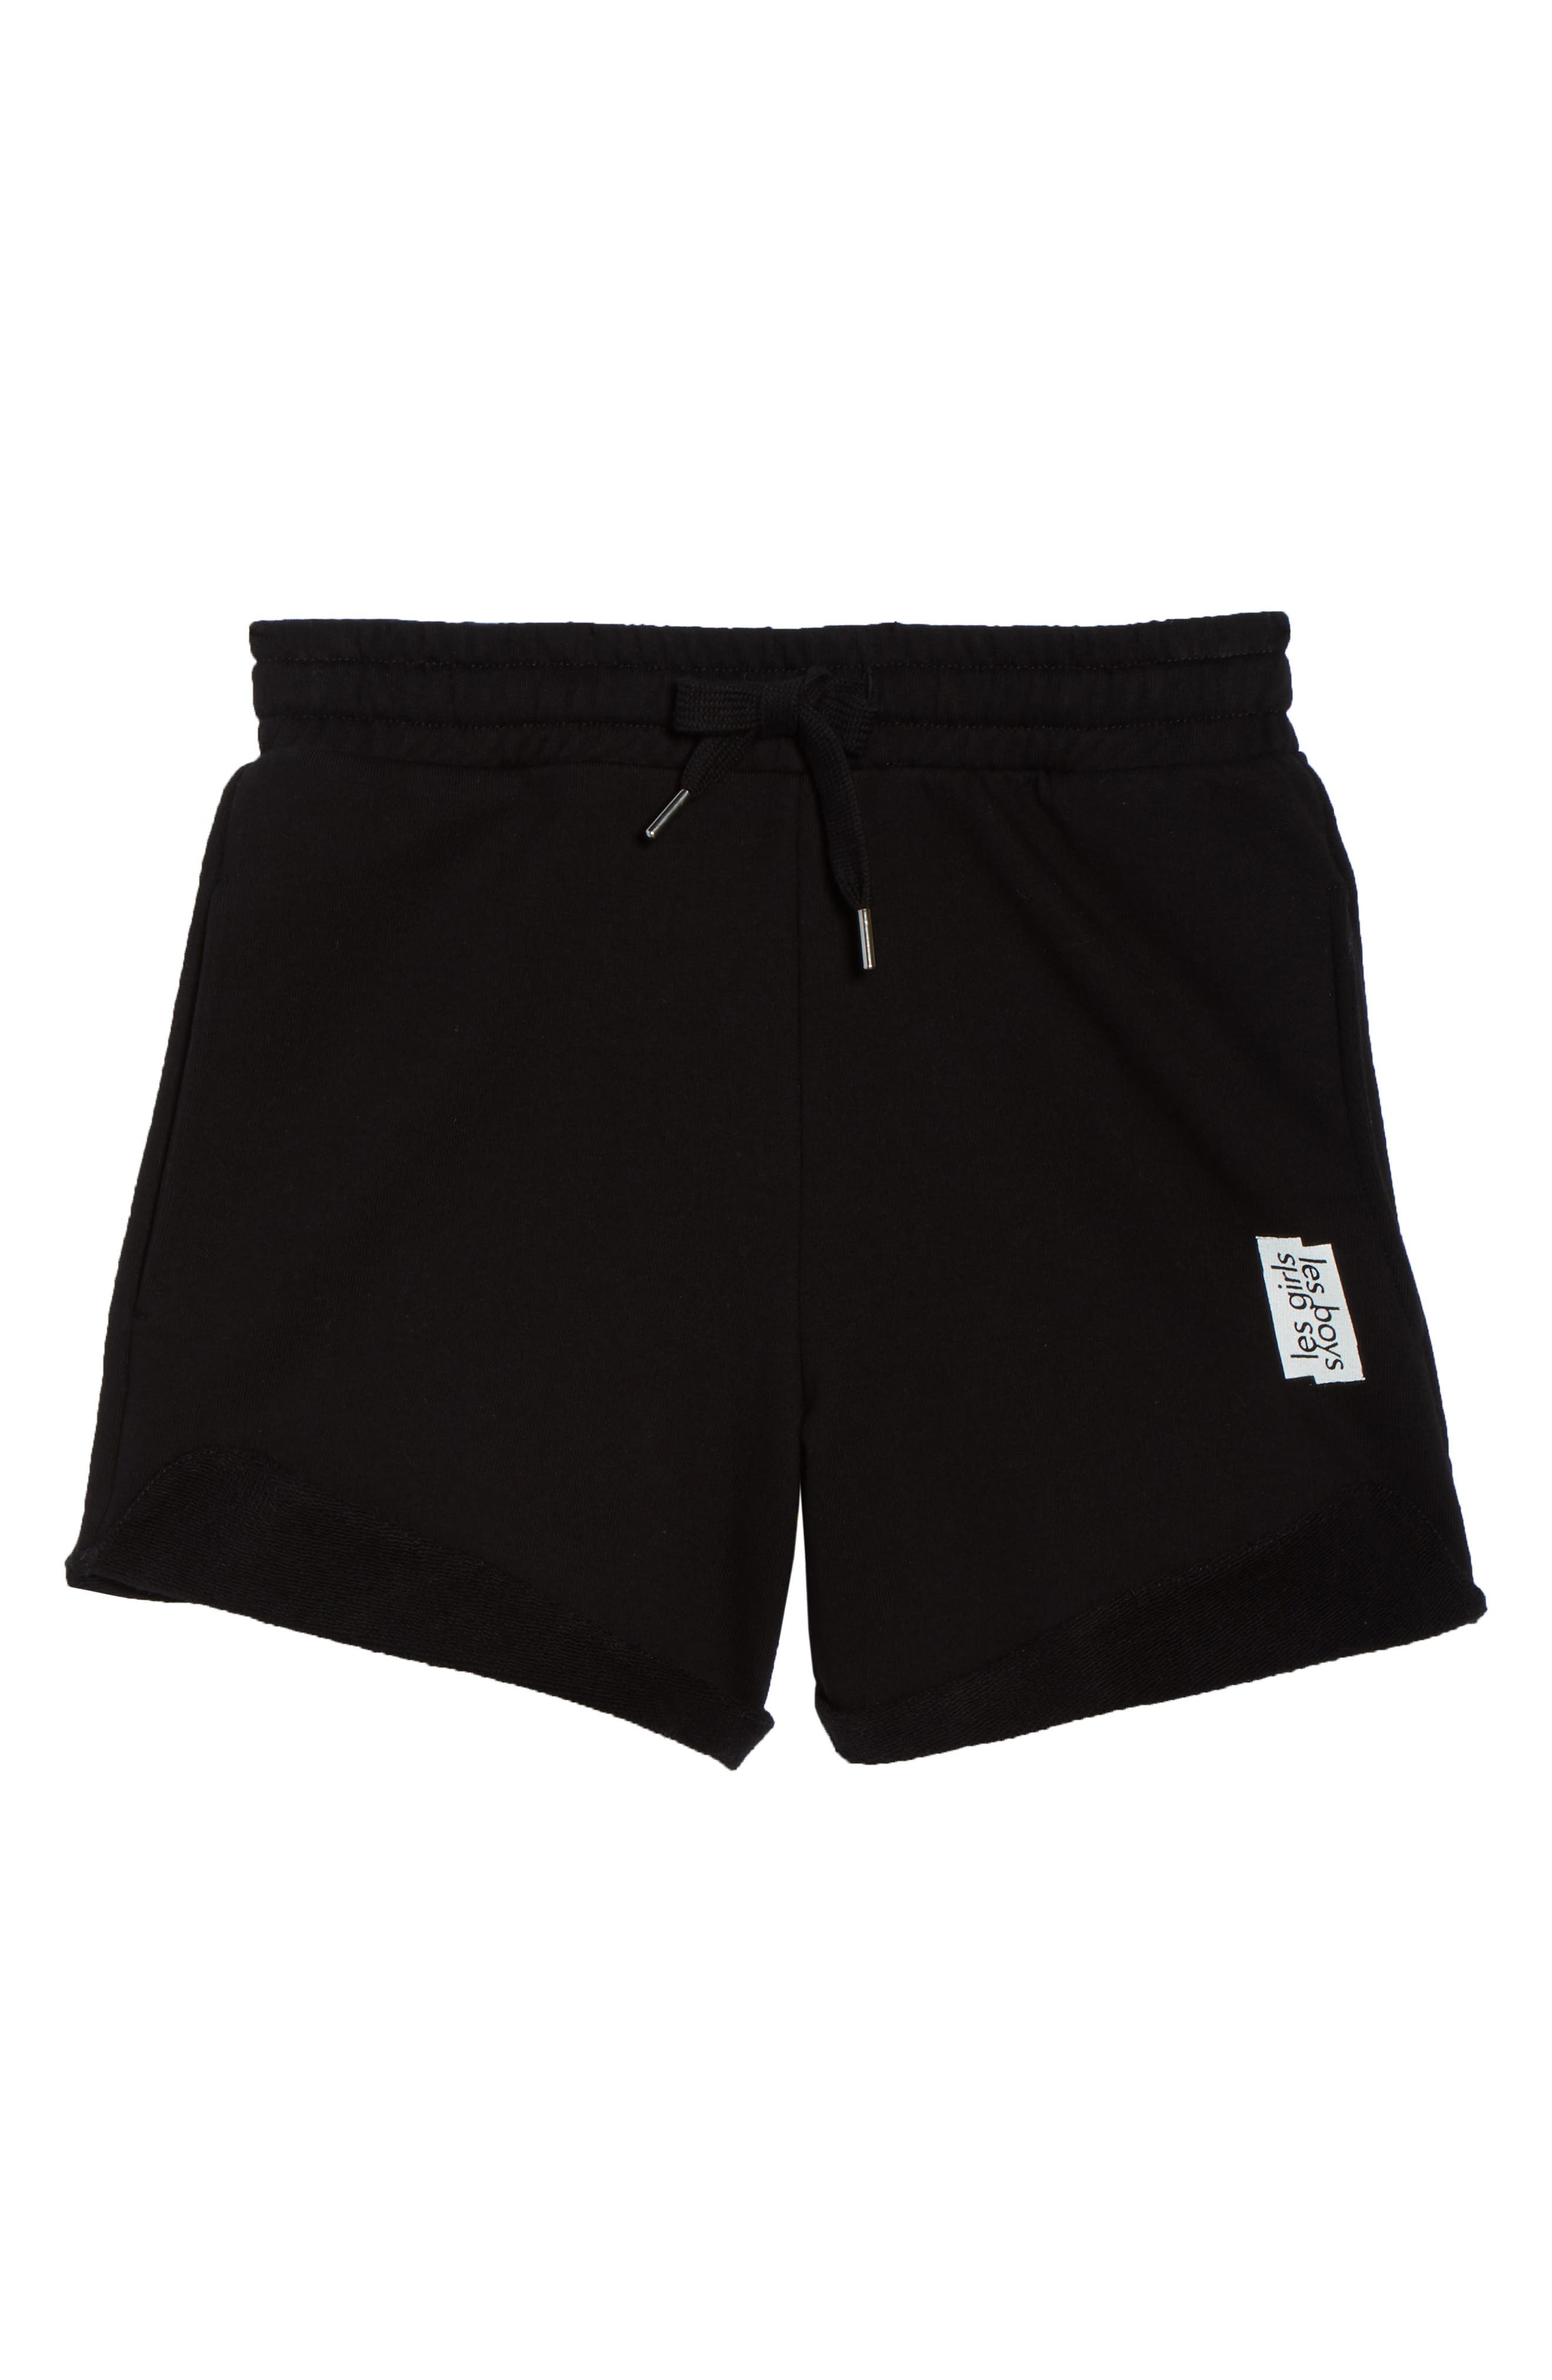 French Terry High Waist Shorts,                             Alternate thumbnail 6, color,